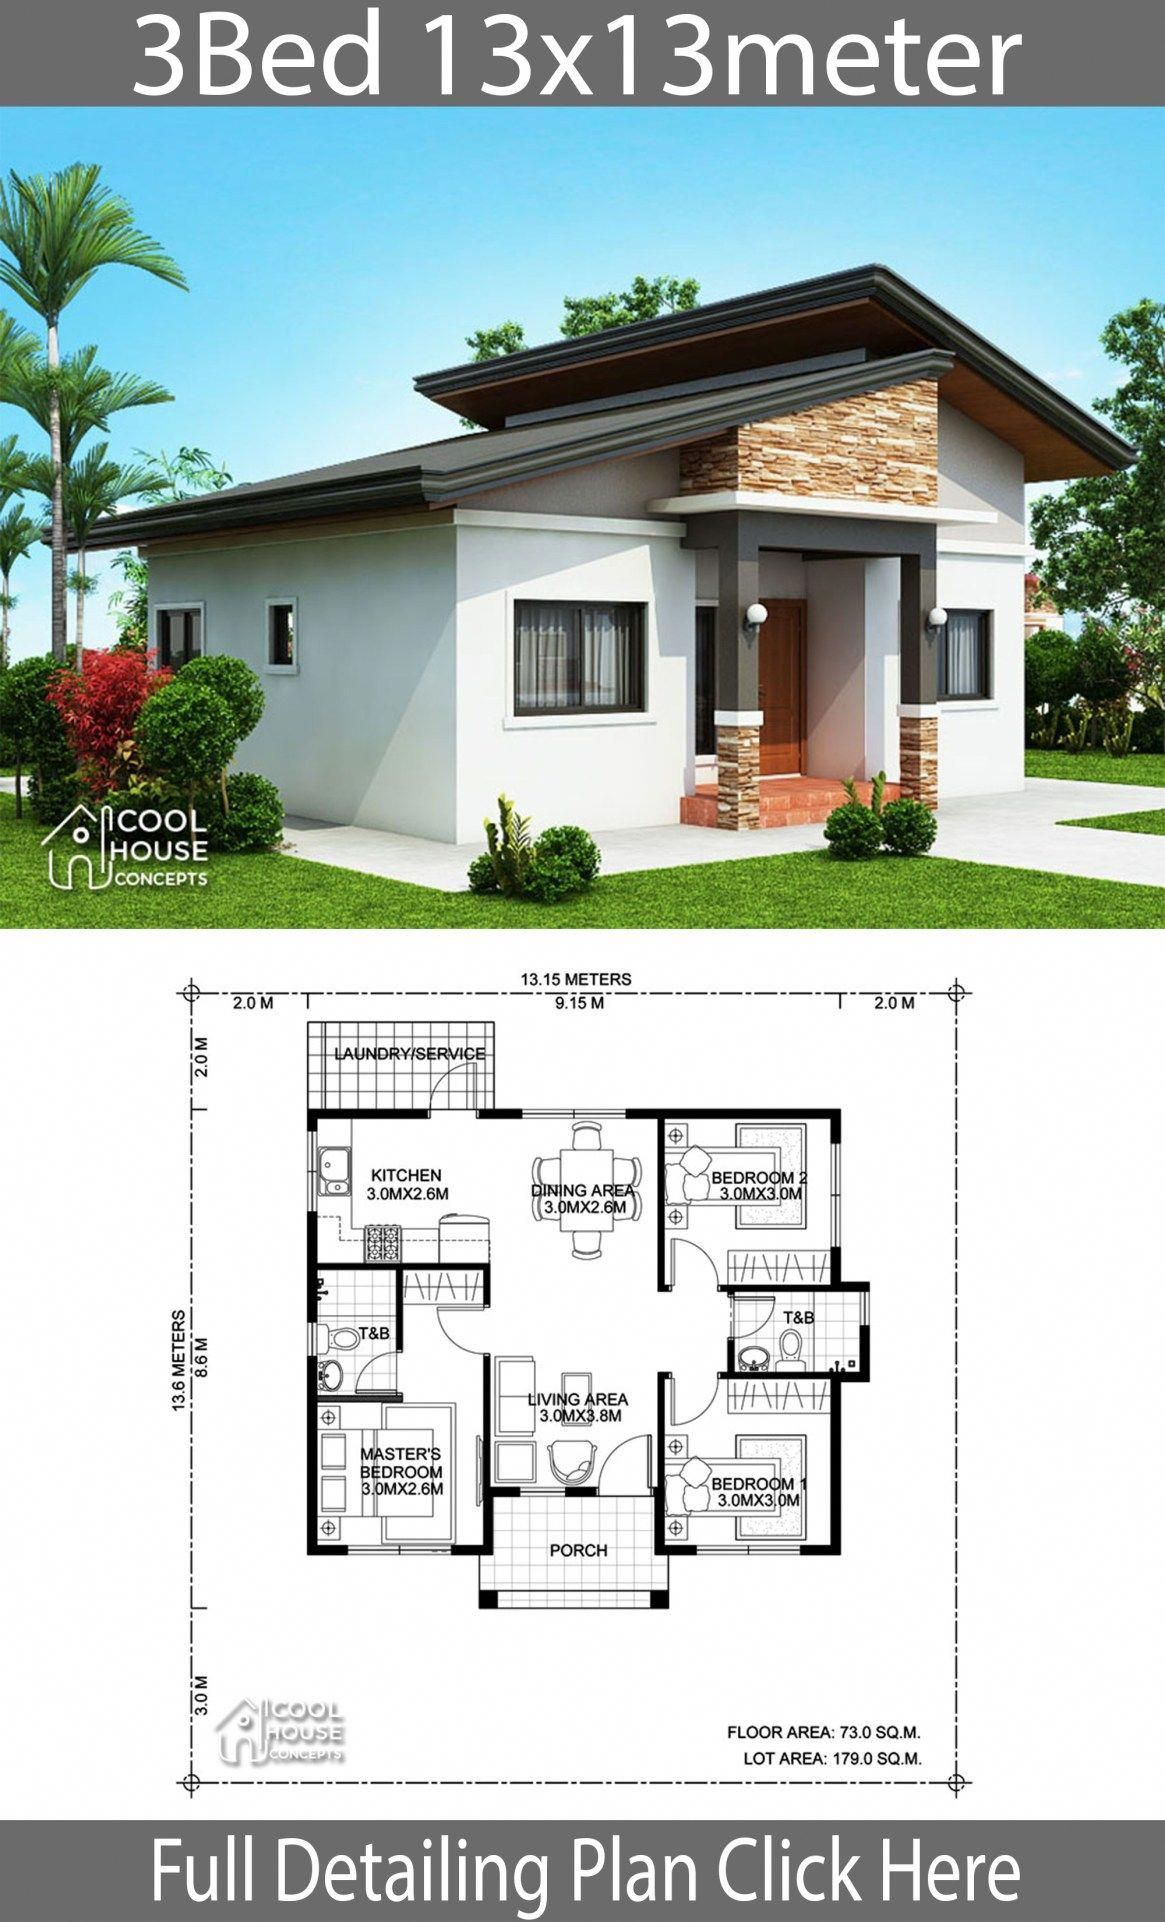 Home Design Plan 13x13m With 3 Bedrooms Home Design With Plansearch Houseinterior Simple House Design Cool House Designs Bungalow House Design